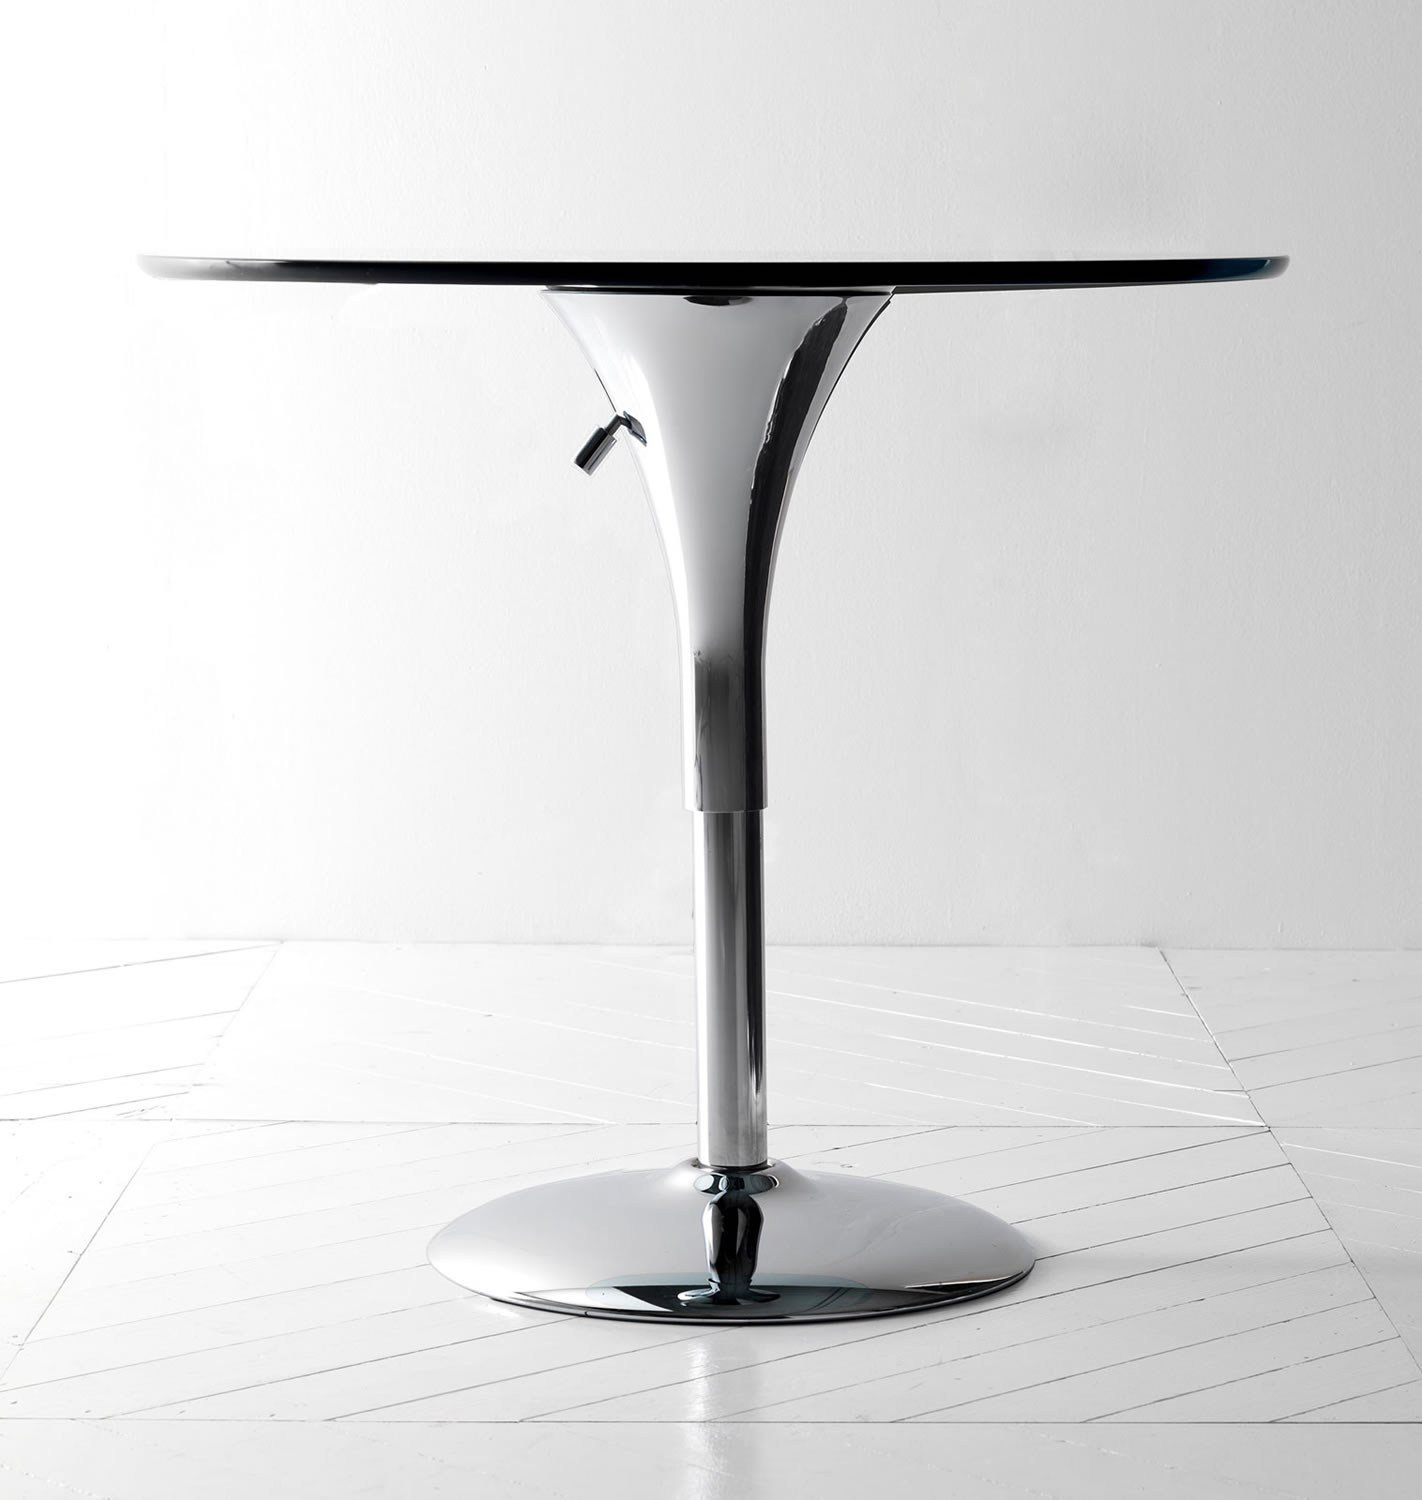 Adjustable Height Round Coffee Table: Height-adjustable Round Coffee Table SATELLITE By Esedra